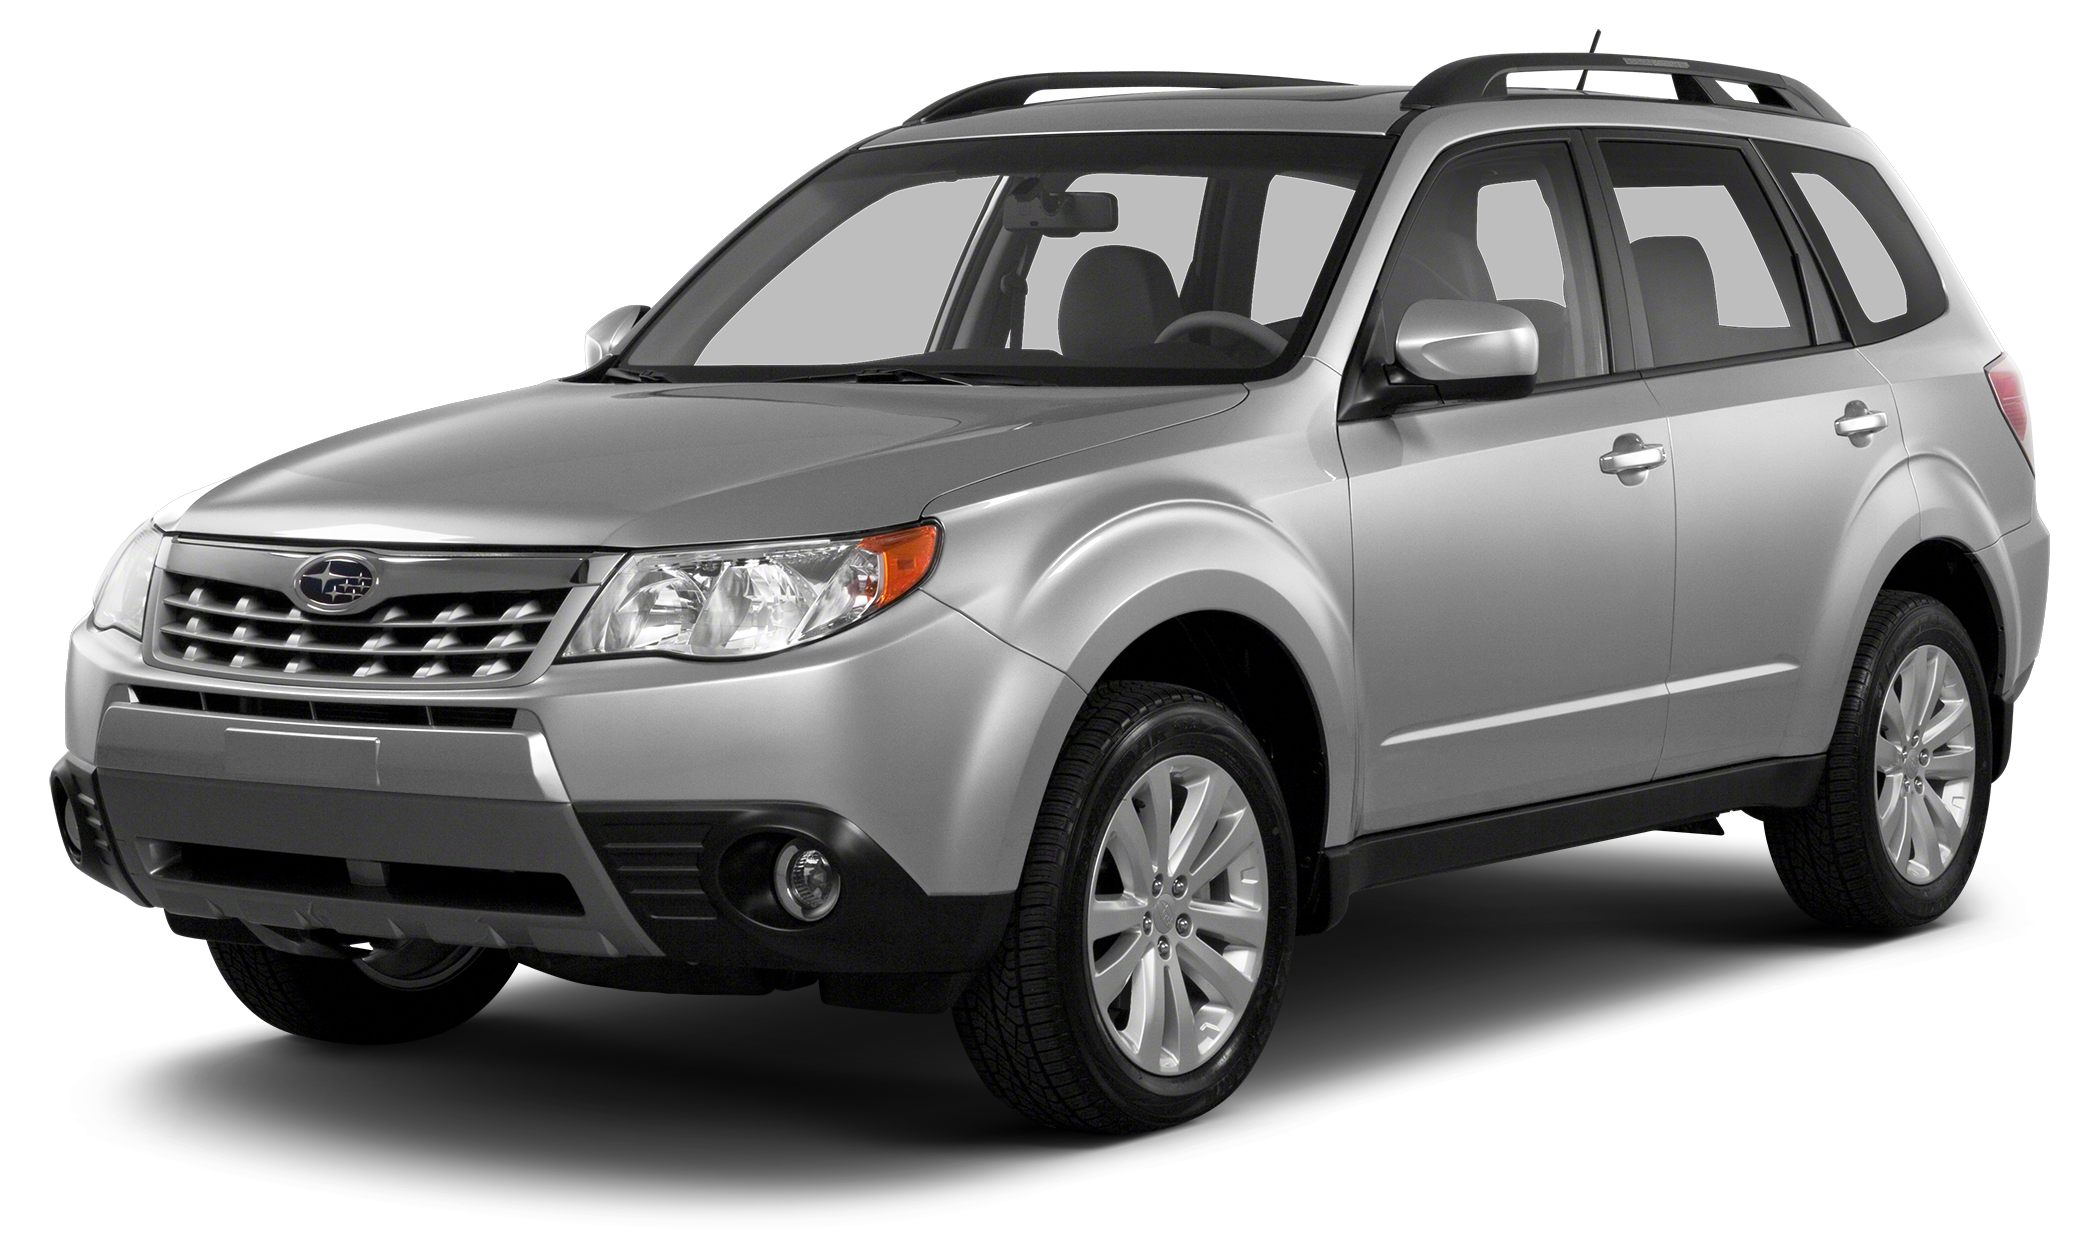 2013 Subaru Forester 25X FUEL EFFICIENT 27 MPG Hwy21 MPG City PRICED TO MOVE 1600 below Kell